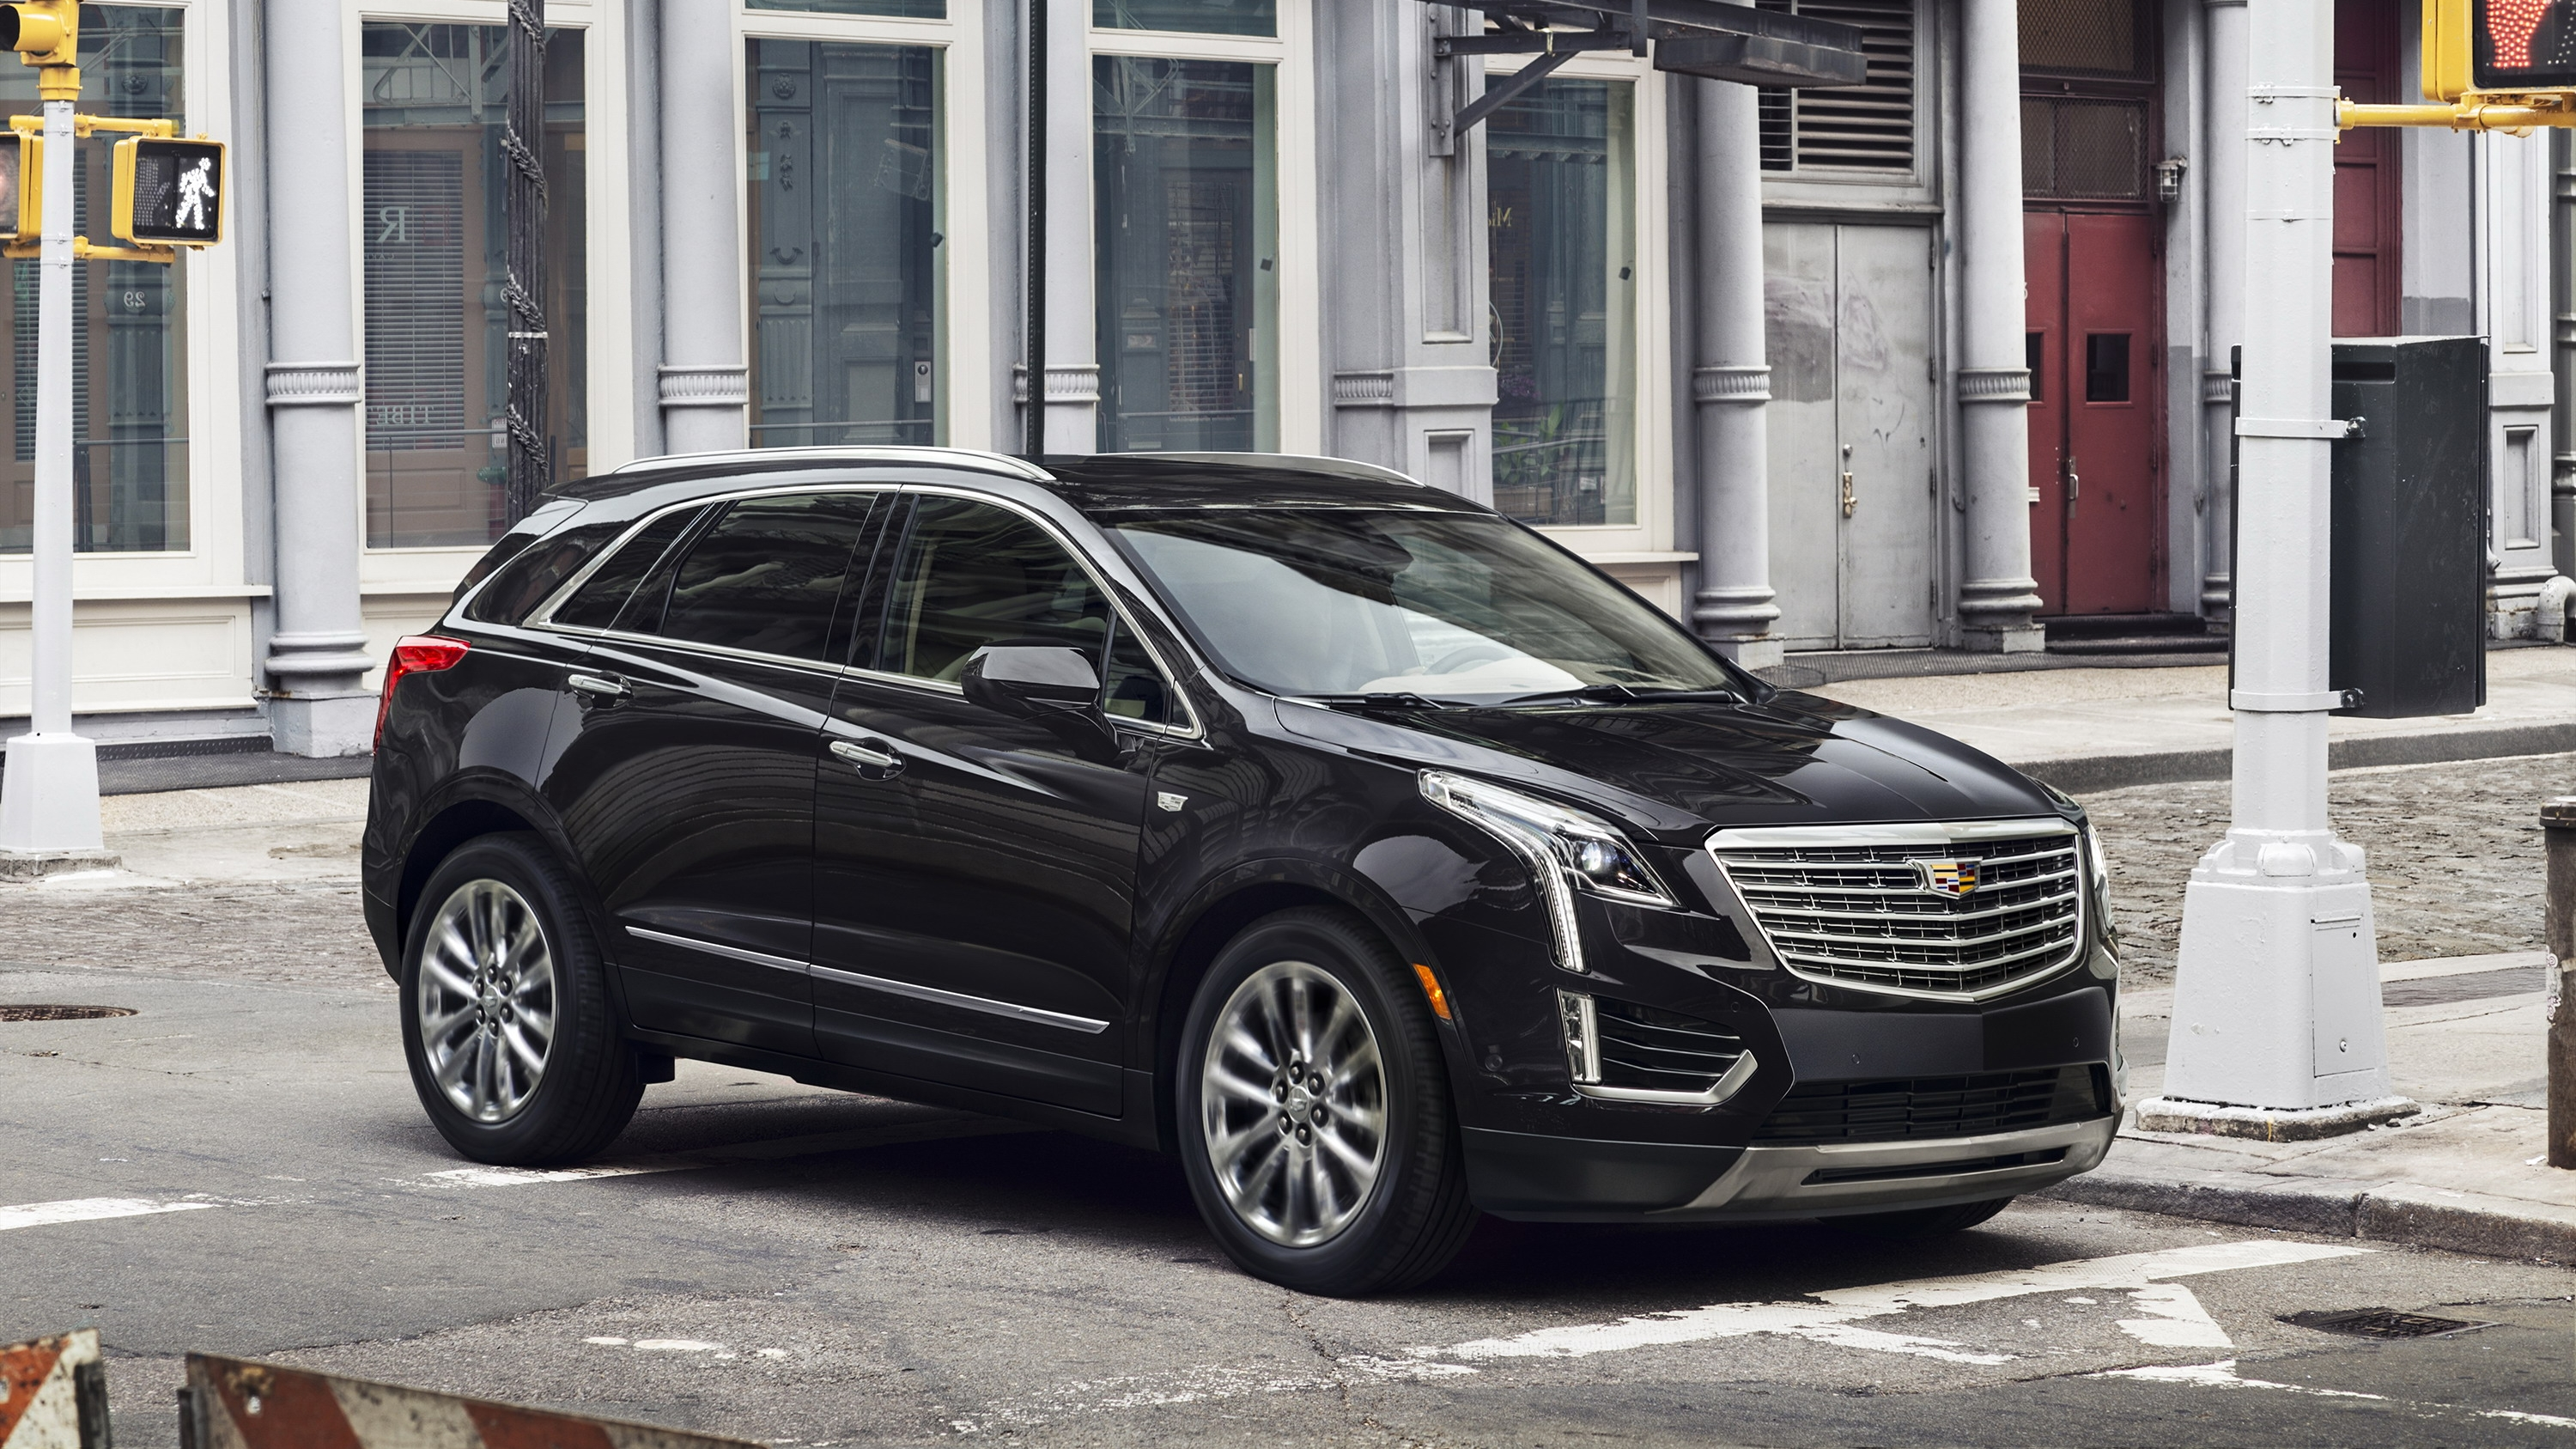 2018 Cadillac XT5: Changes, Specs, Price >> Cadillac Xt5 Latest News Reviews Specifications Prices Photos